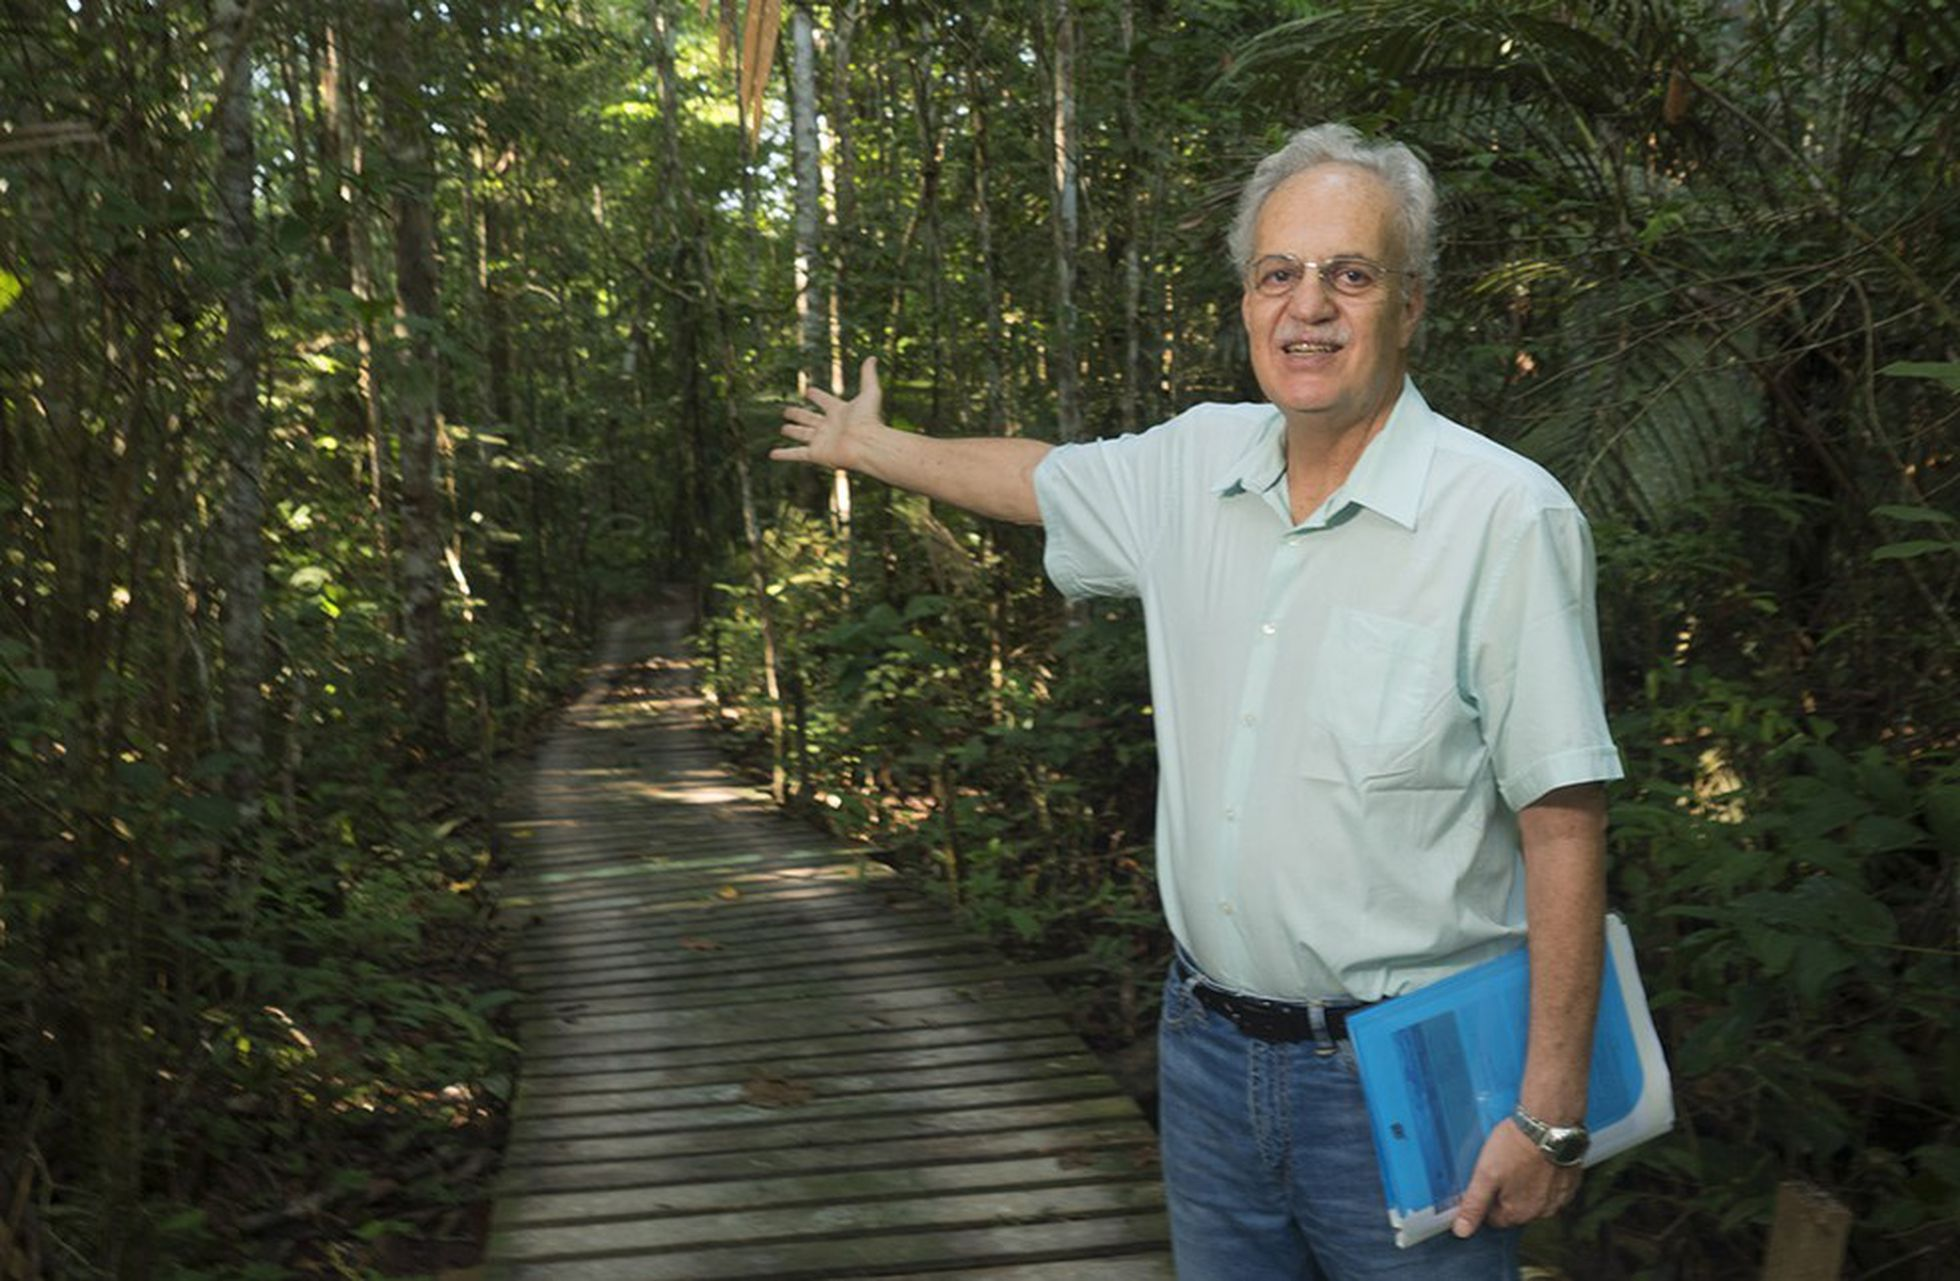 Scientist Carlos Nobre, coordinator of the National Institute of Science and Technology for Climate Change (INCT-MC).